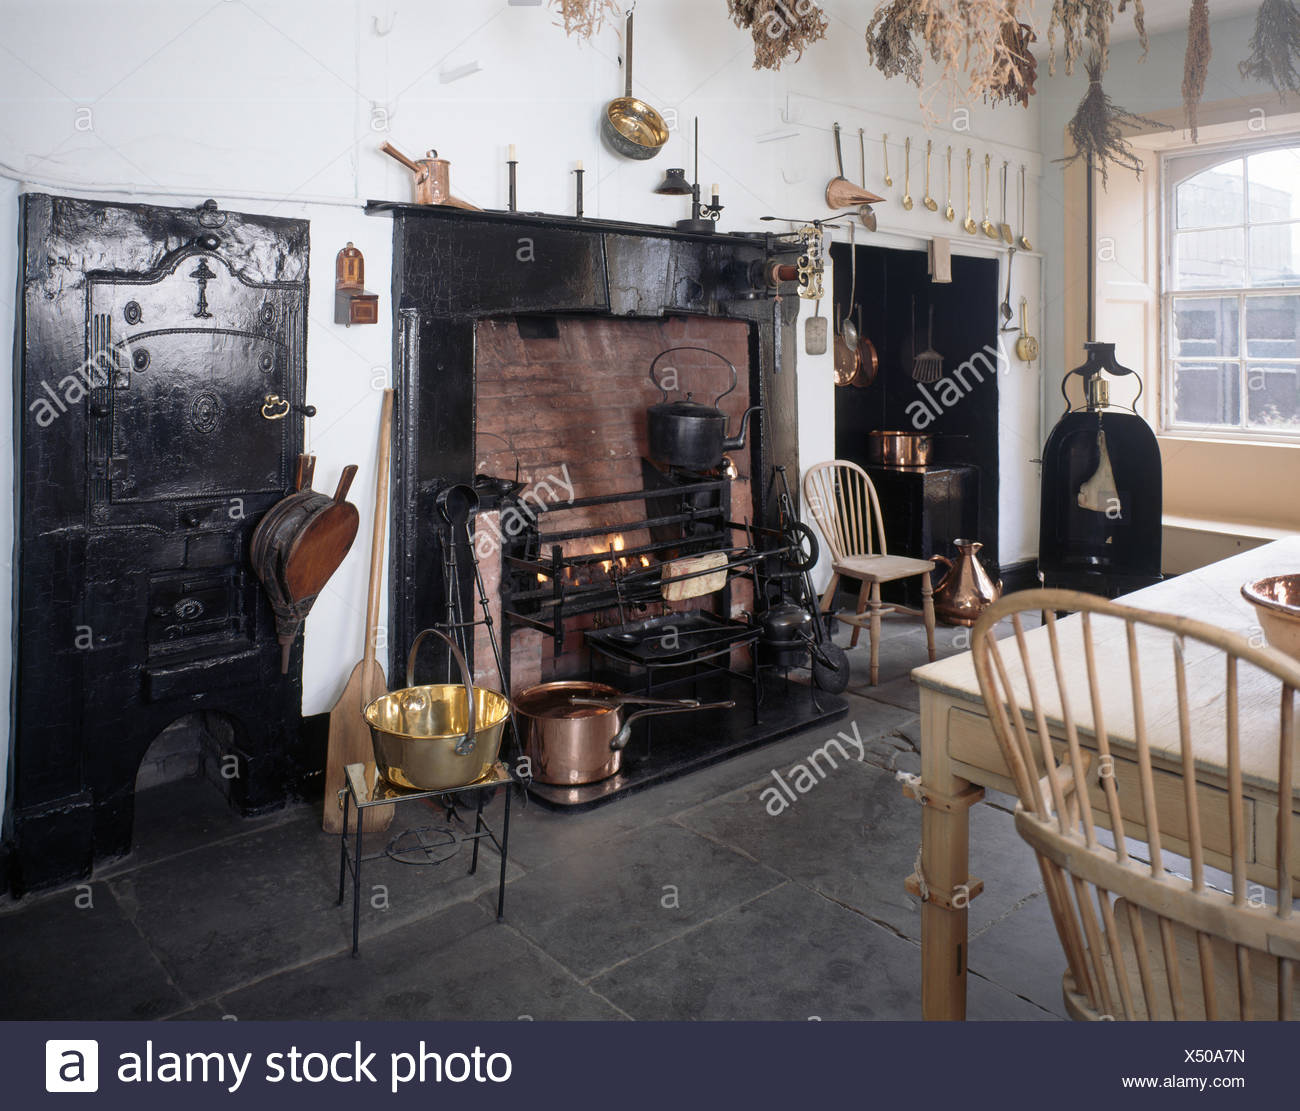 Page 2 Victorian Kitchen High Resolution Stock Photography And Images Alamy